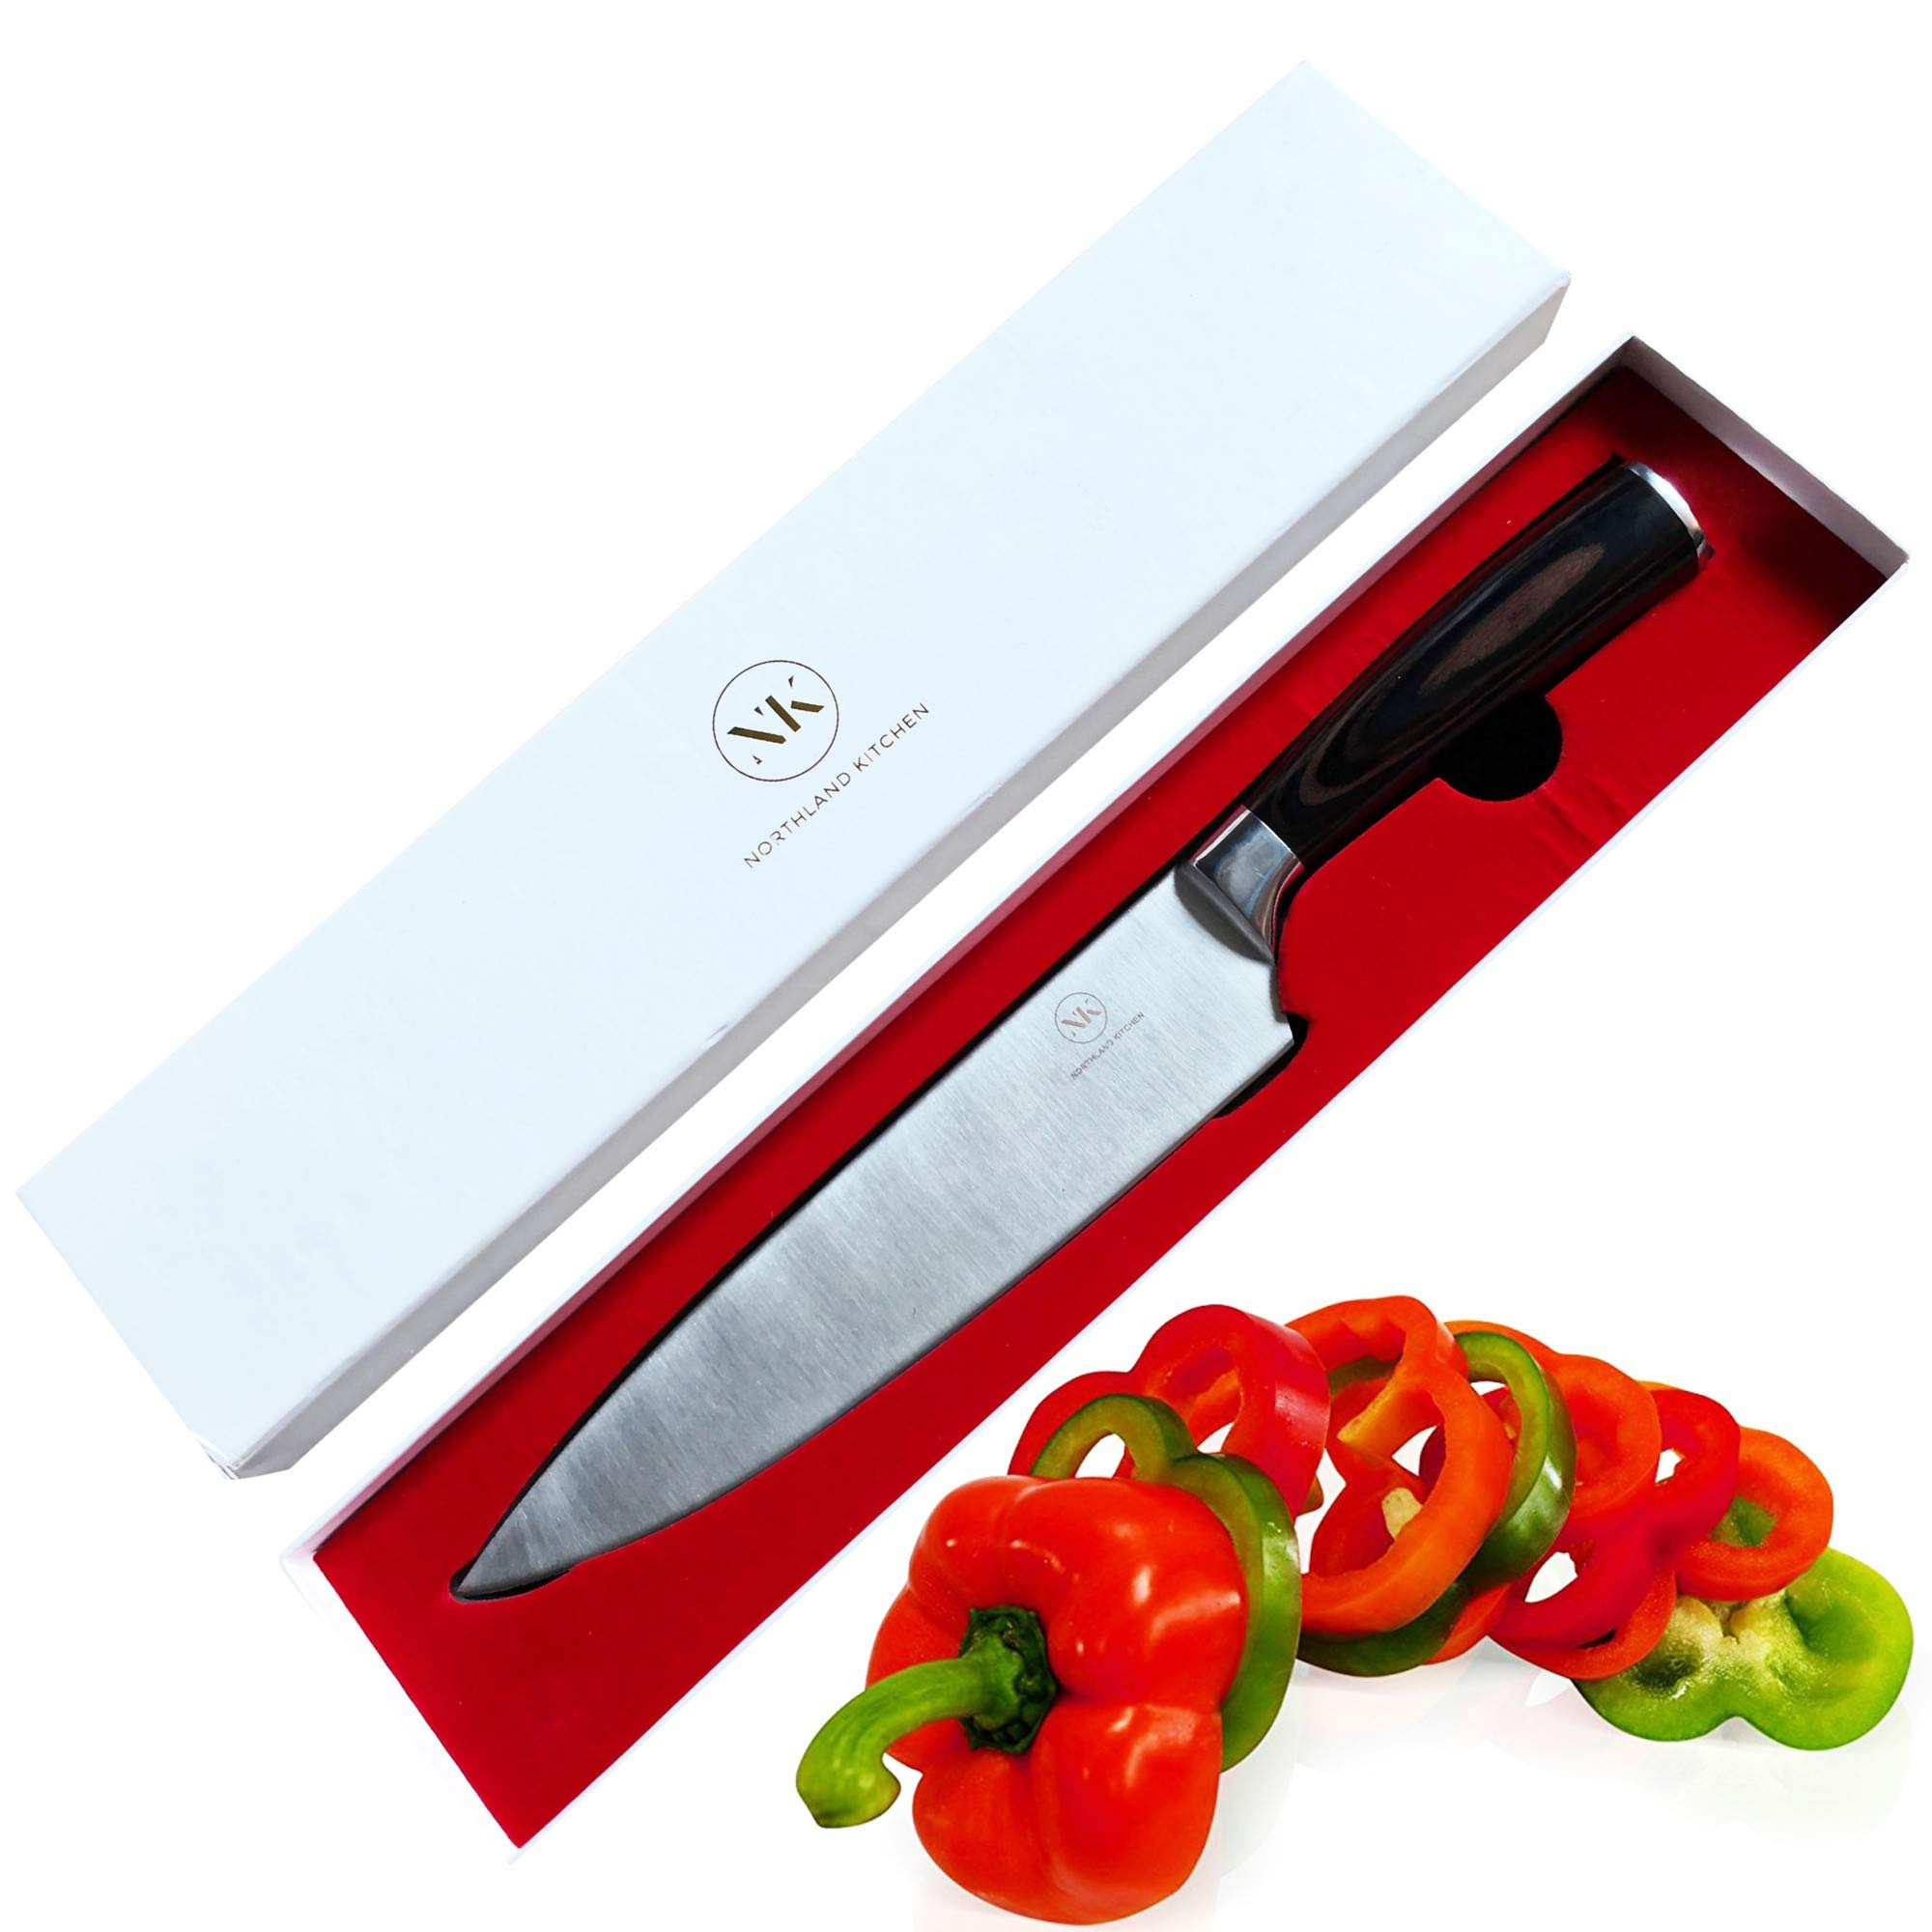 Chef's Knife by Northland Kitchen - Professional 8 inch Stainless Steel Blade with Wood Handle - Ergonomic and Sharp - Well Balanced and Weighted - High Carbon Steel - For Home and Restaurant